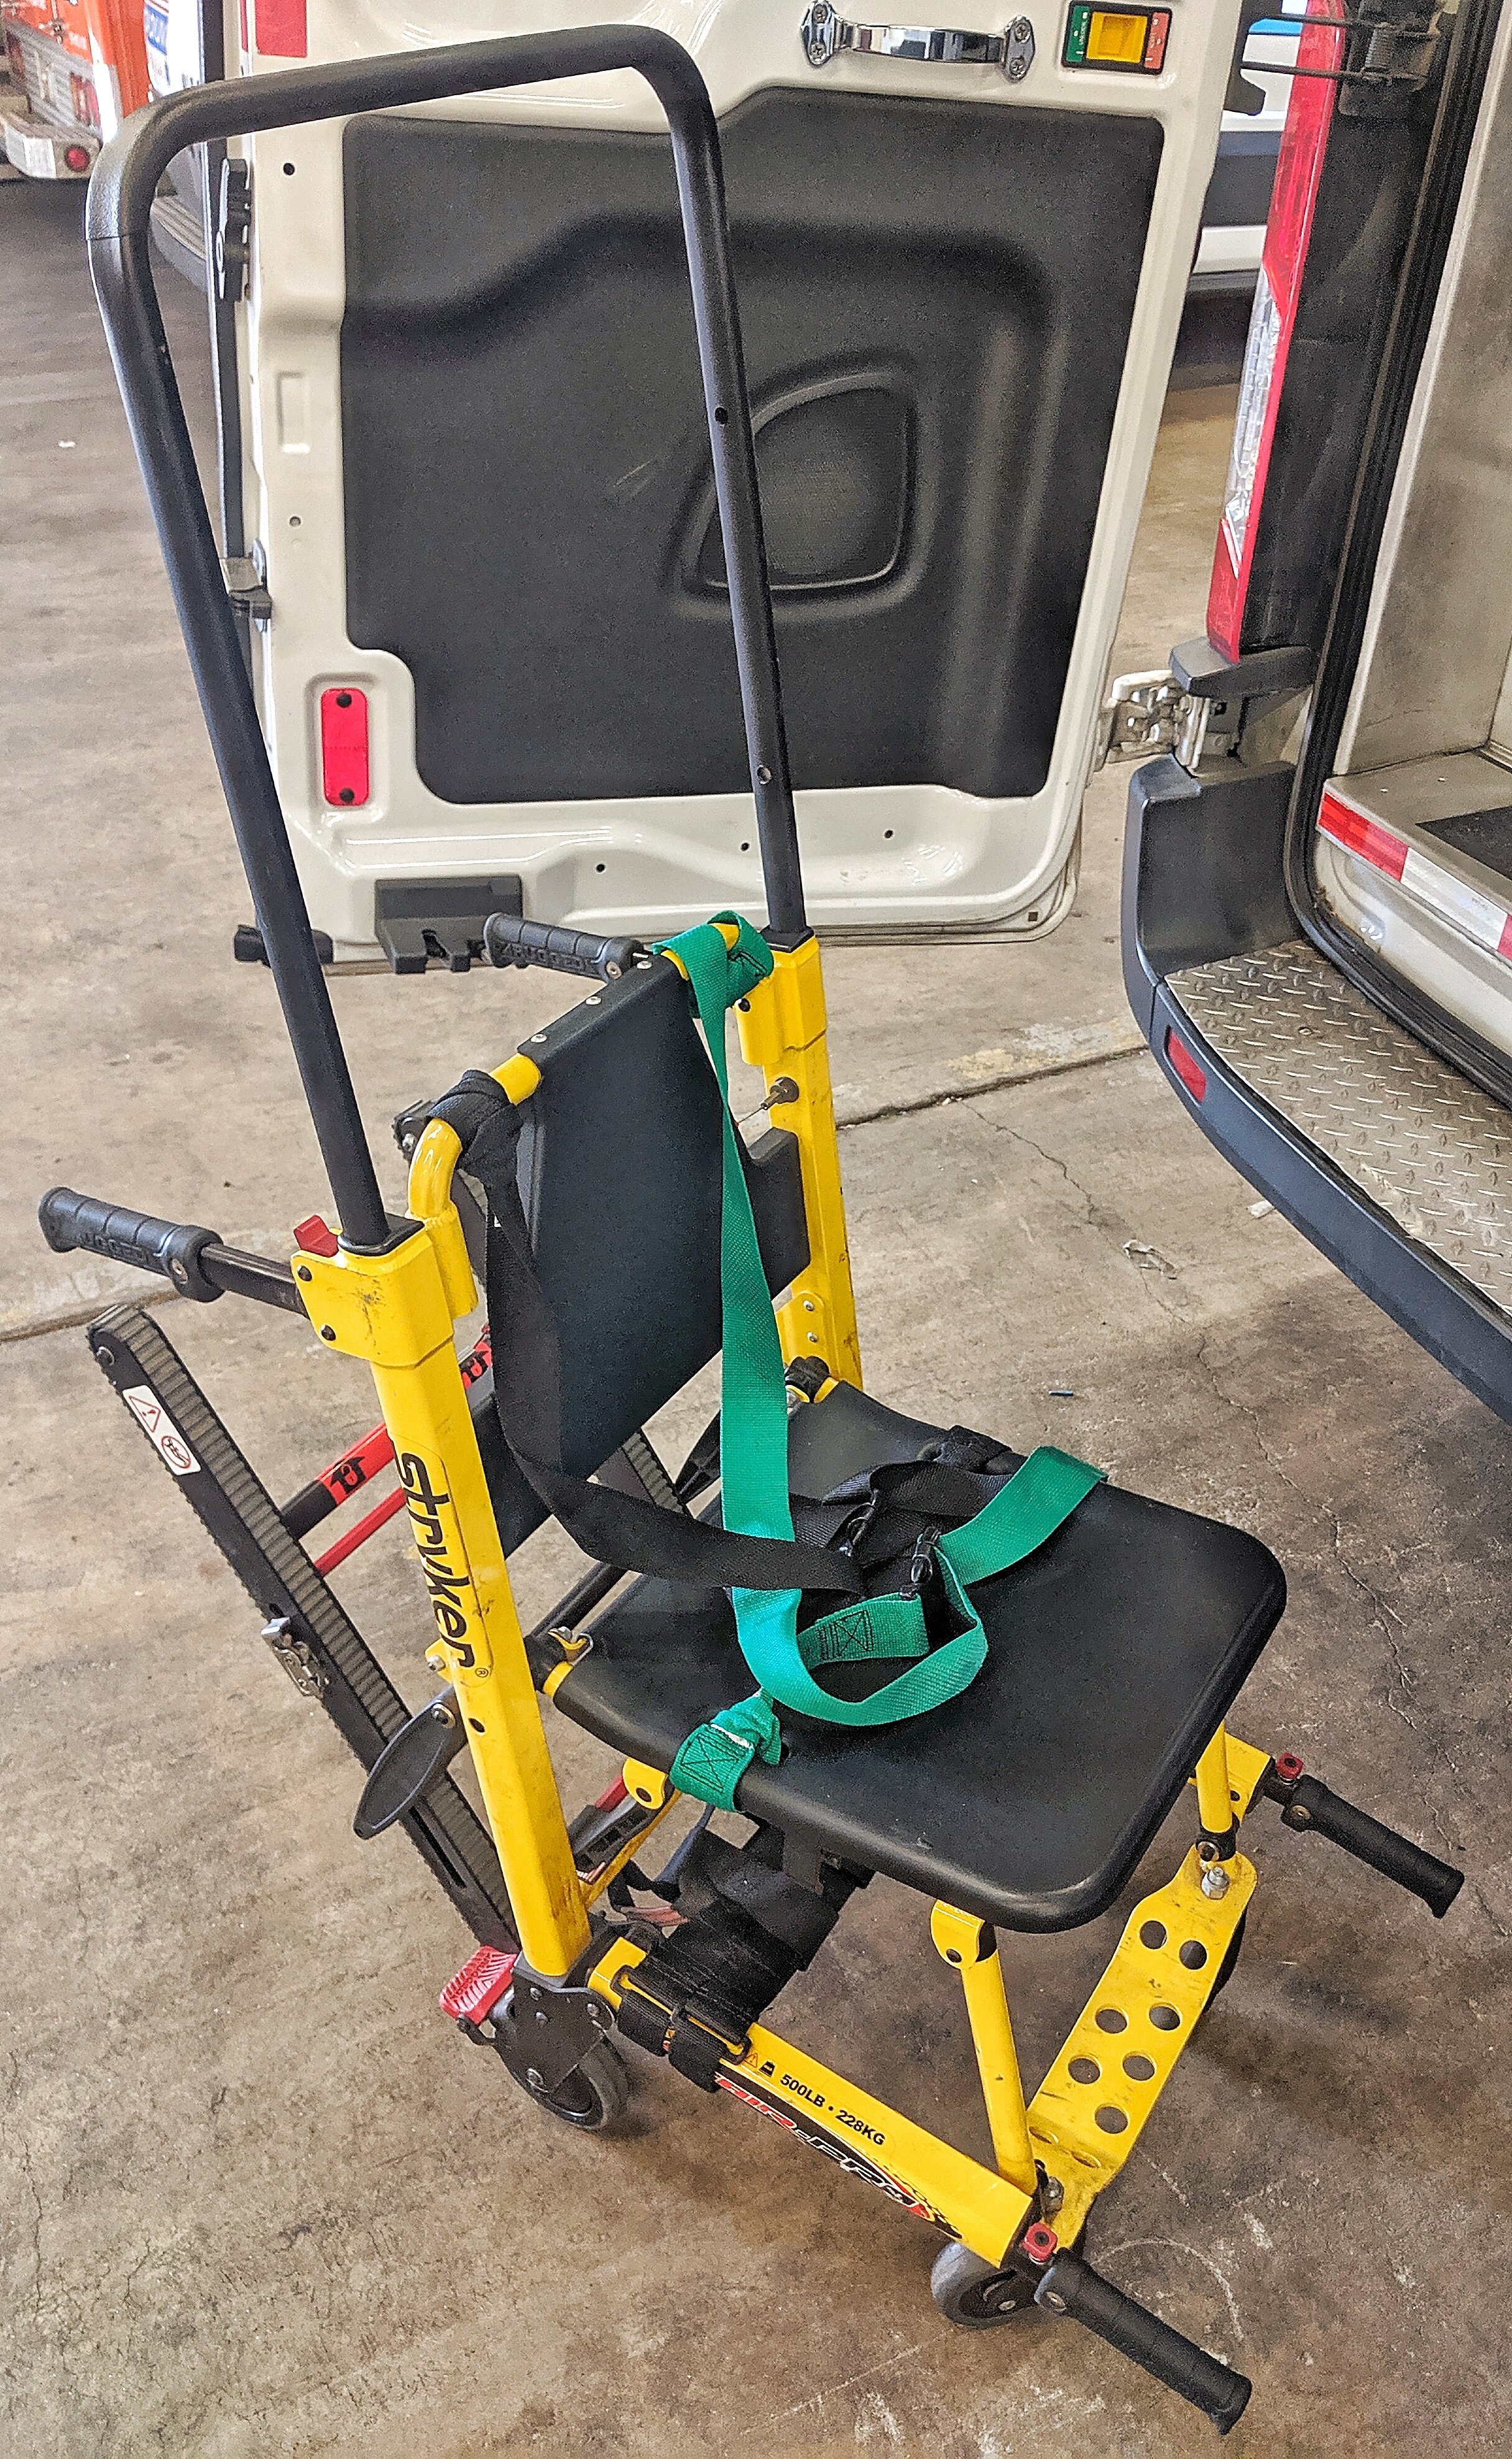 Stryker Stair Chair - Transport your patients up or down stairs with the easiest stair chair to operate.